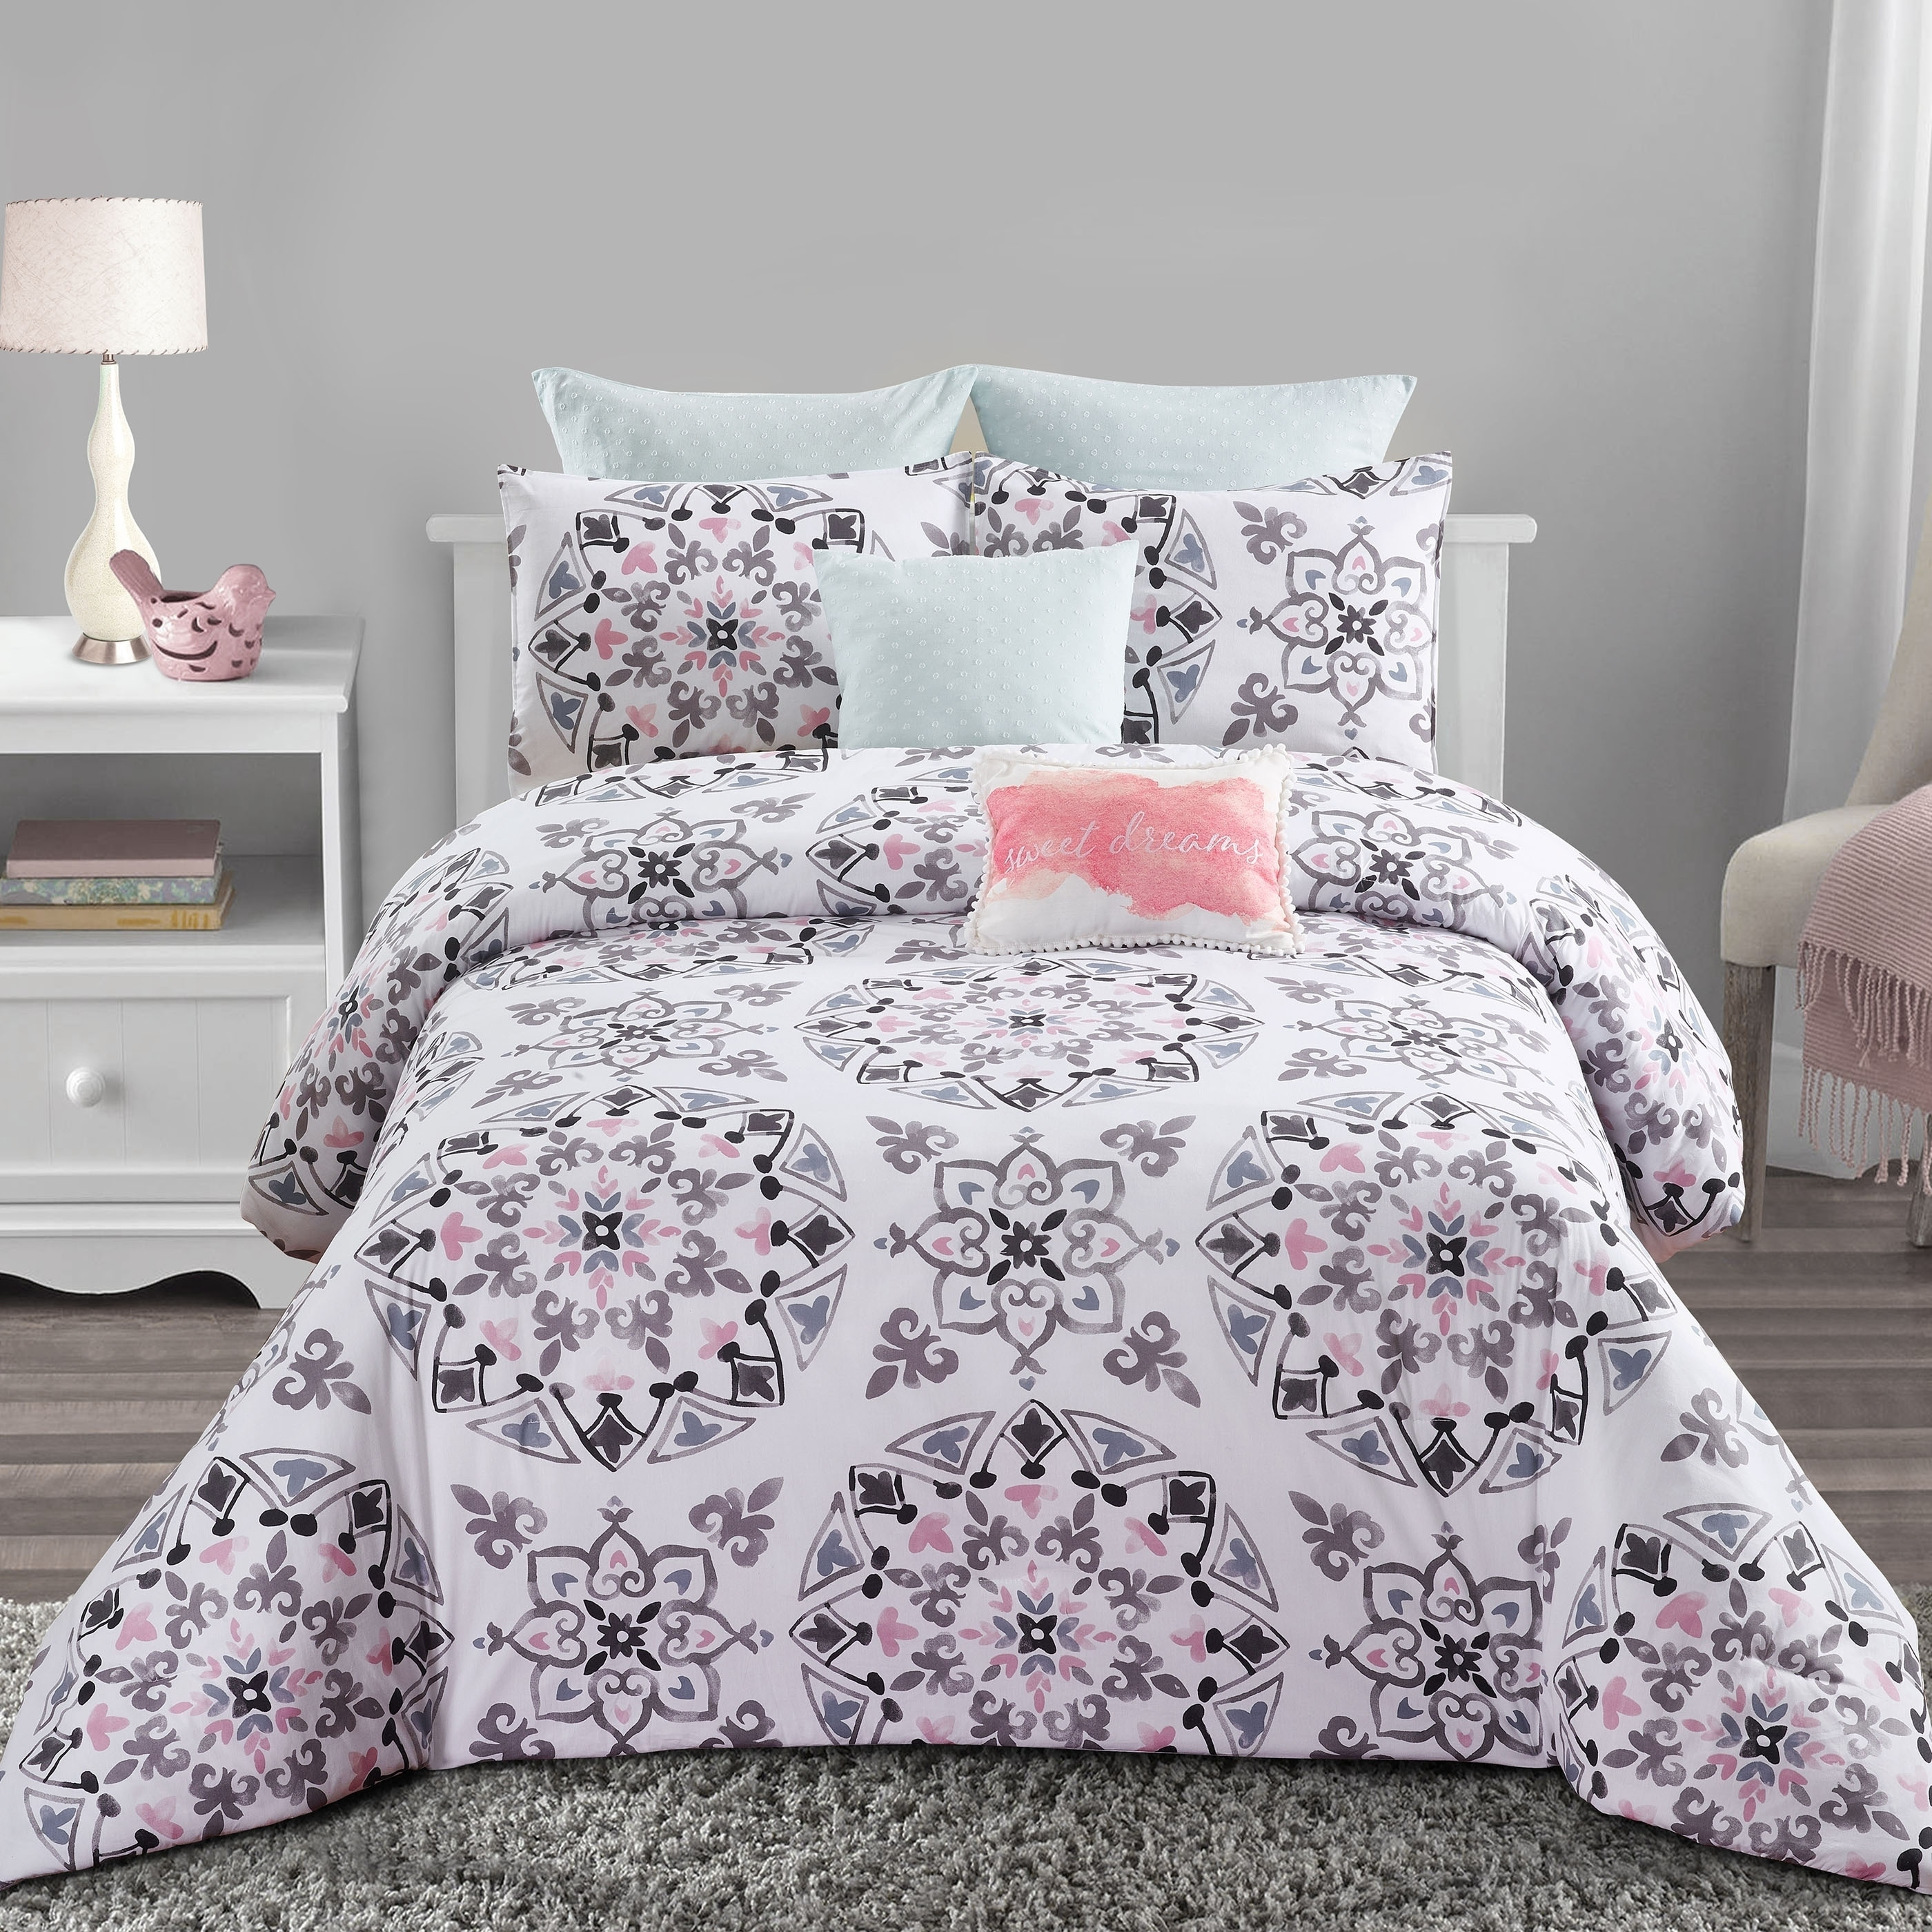 Style Quarters Callie Medallion 7pc Comforter Set 100 Cotton Black Gray And Pink Medallion Print Machine Washable King Overstock 21834834